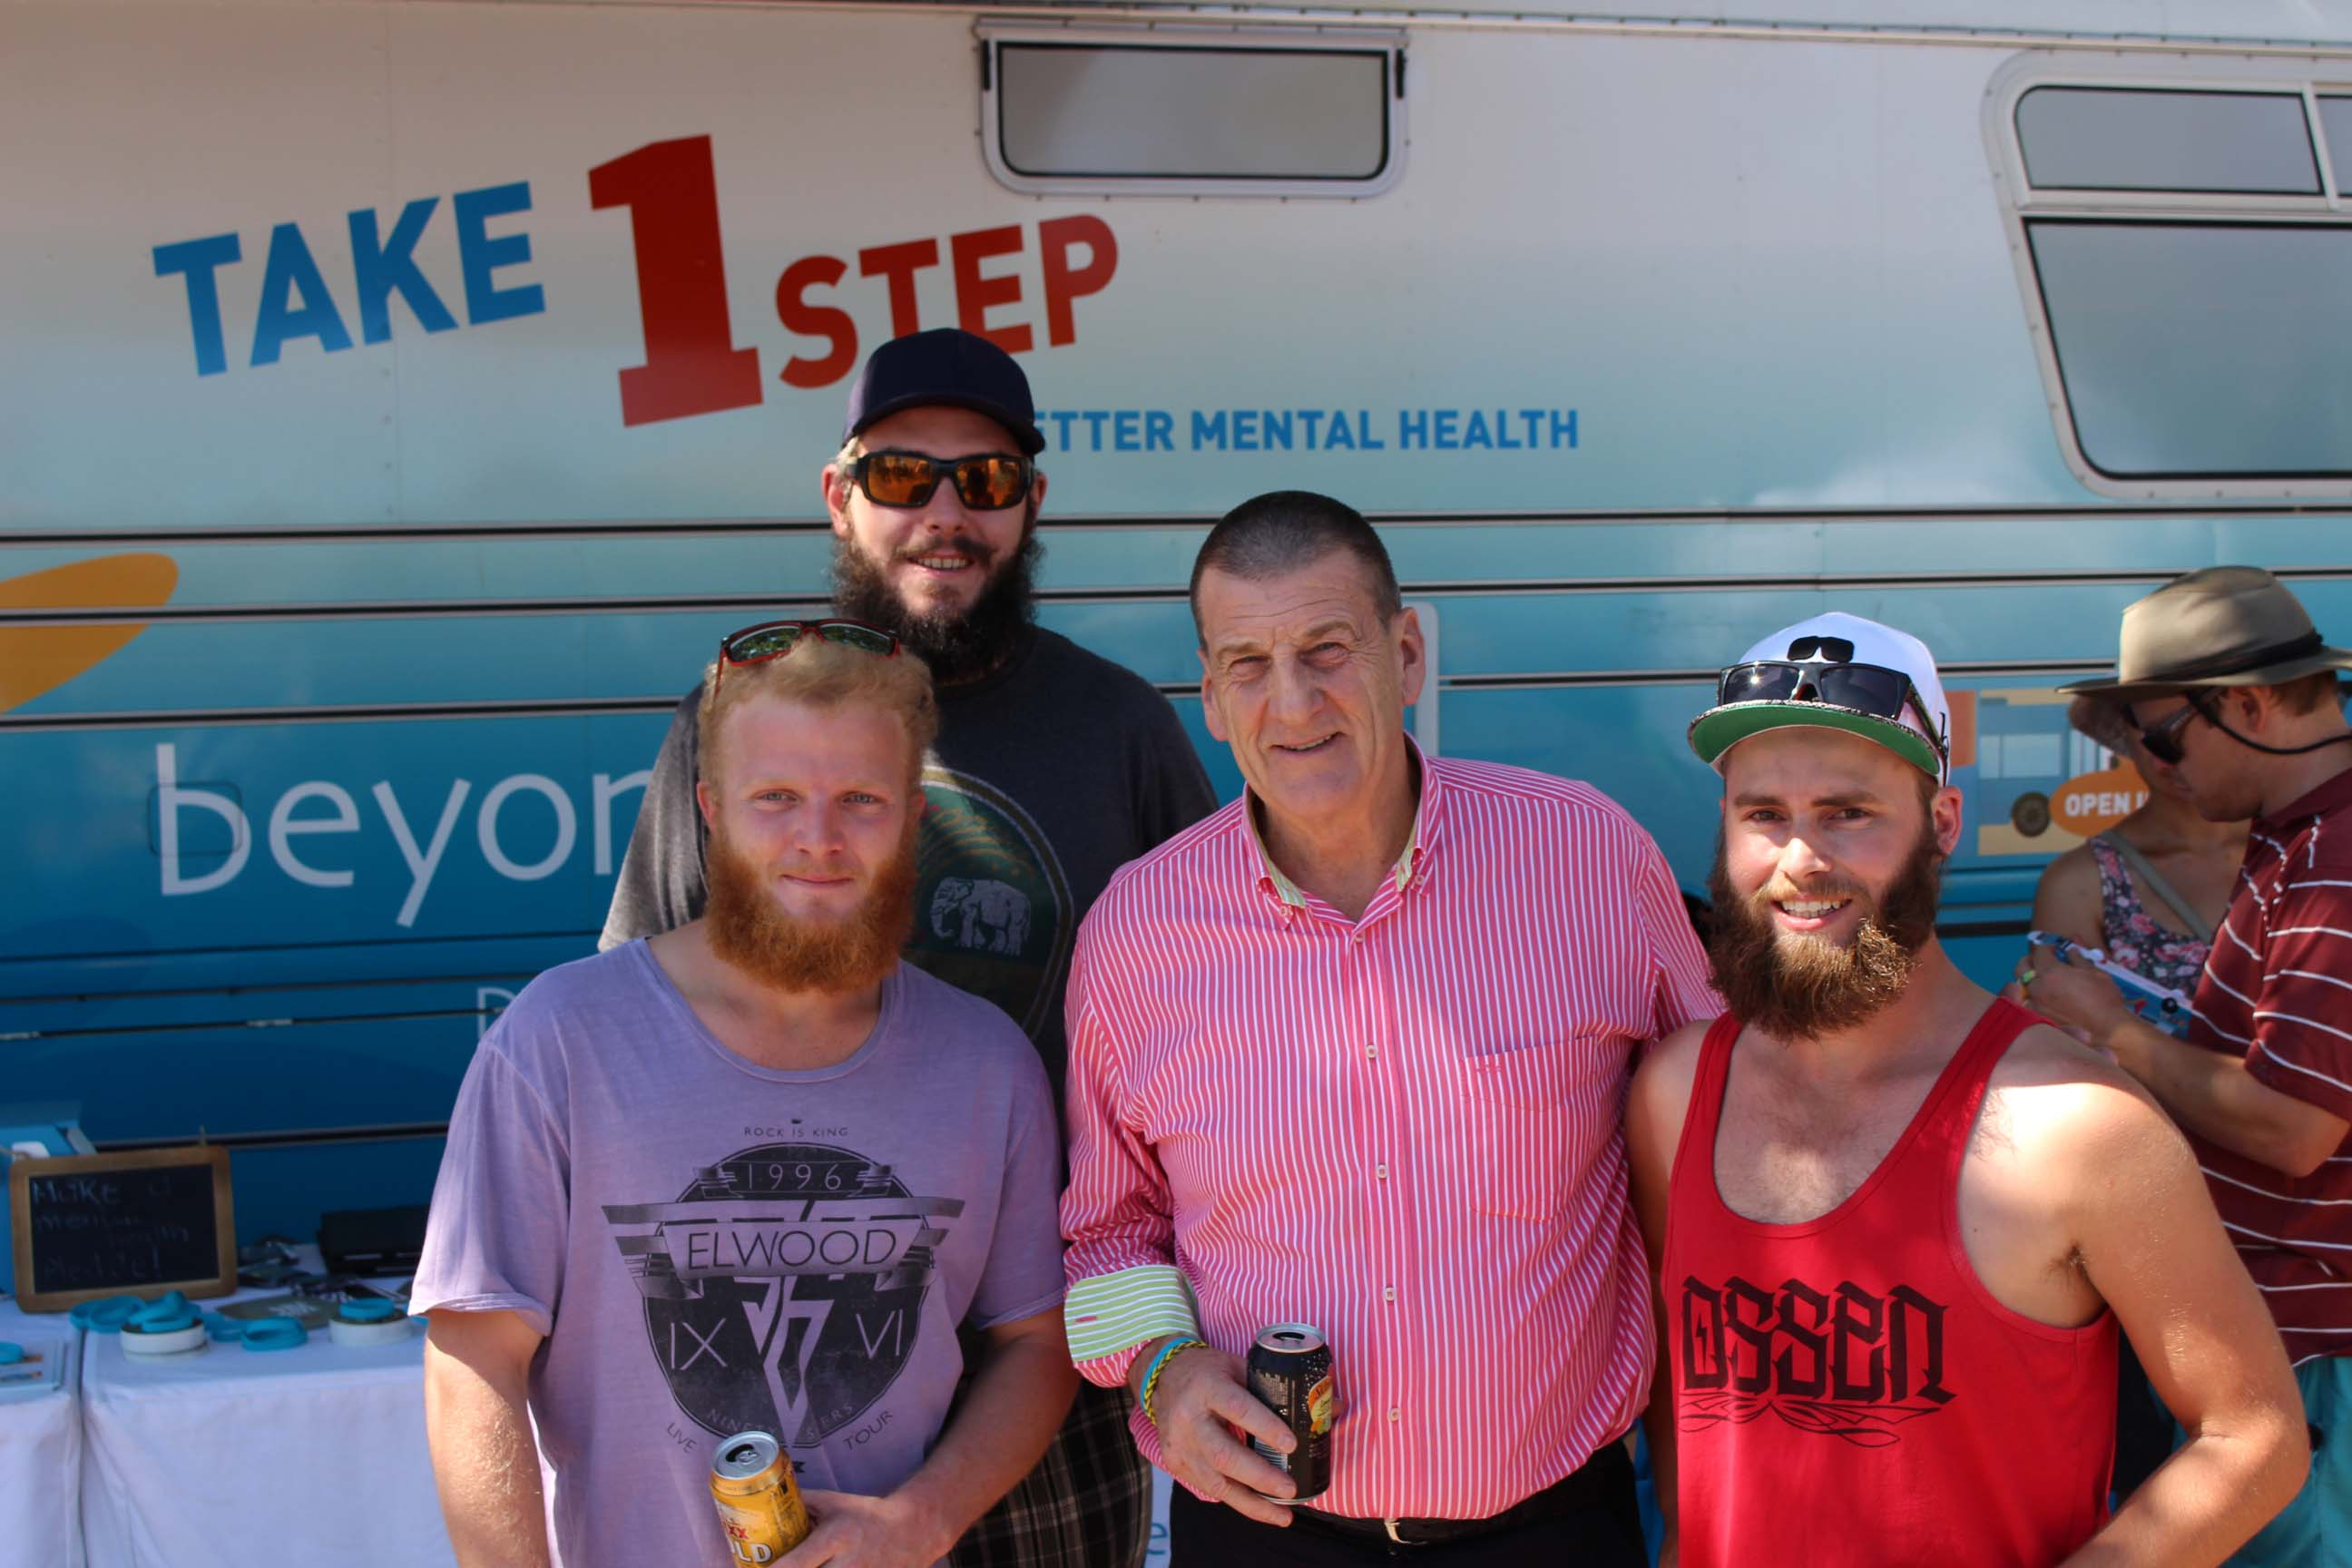 Chairman Jeff Kennett met some of Darwin's Bearded Brotherz at the Beer Can Regatta. A group of 50 men are growing beards for 12 month to raise money for Beyond Blue: NT.